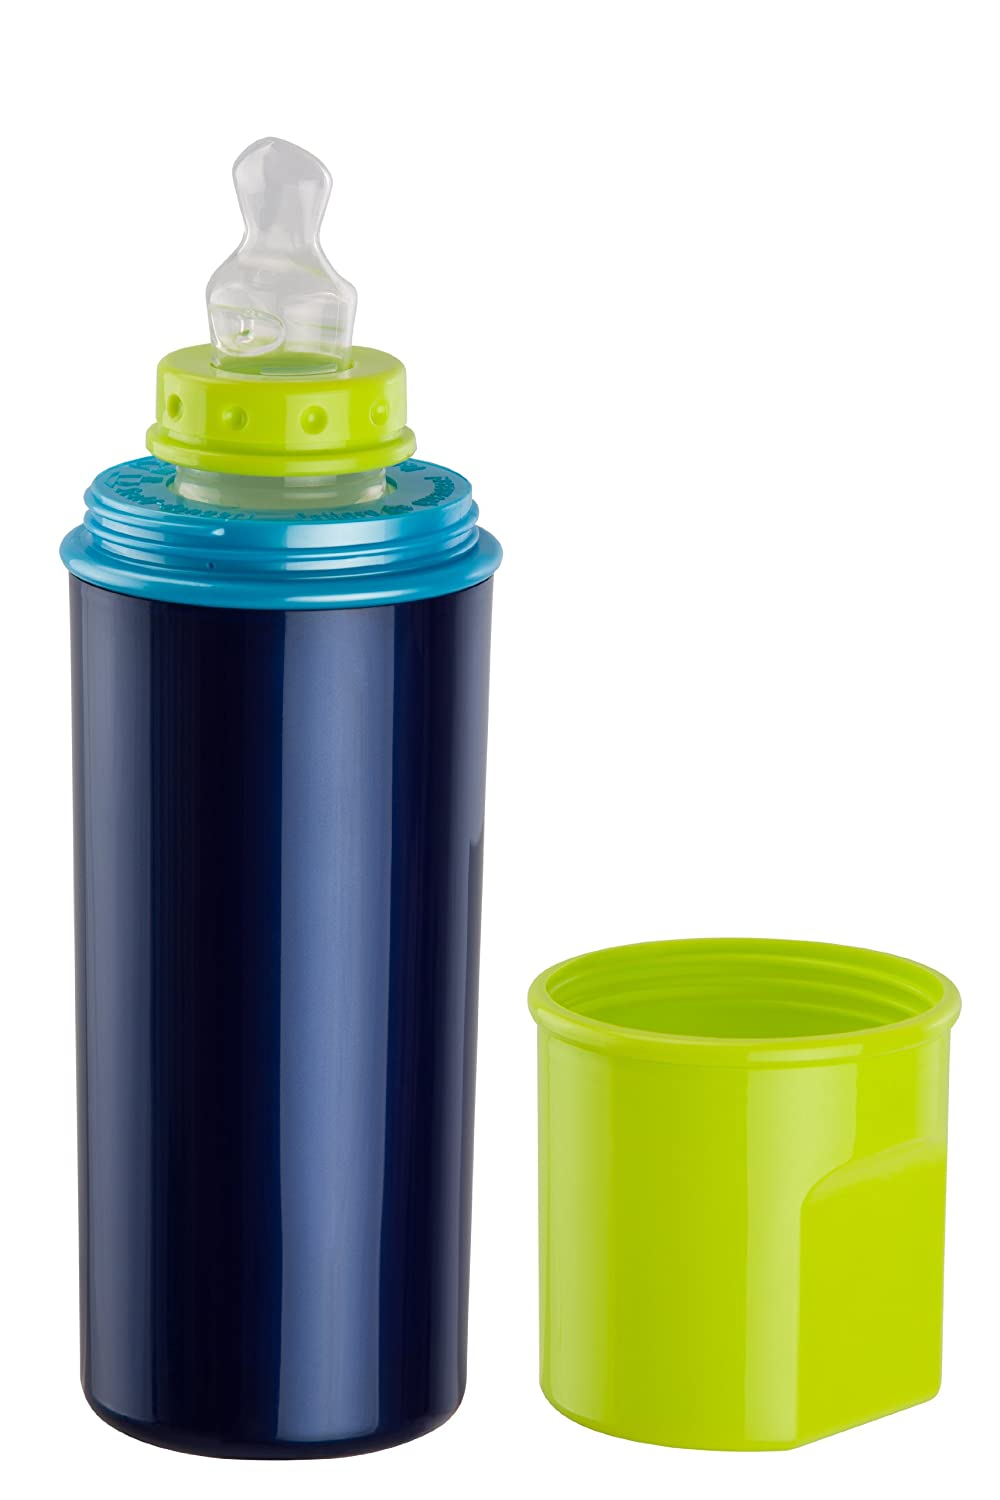 Rotho Babydesign 30026 0020 01 Warmhalteflasche, blue perl